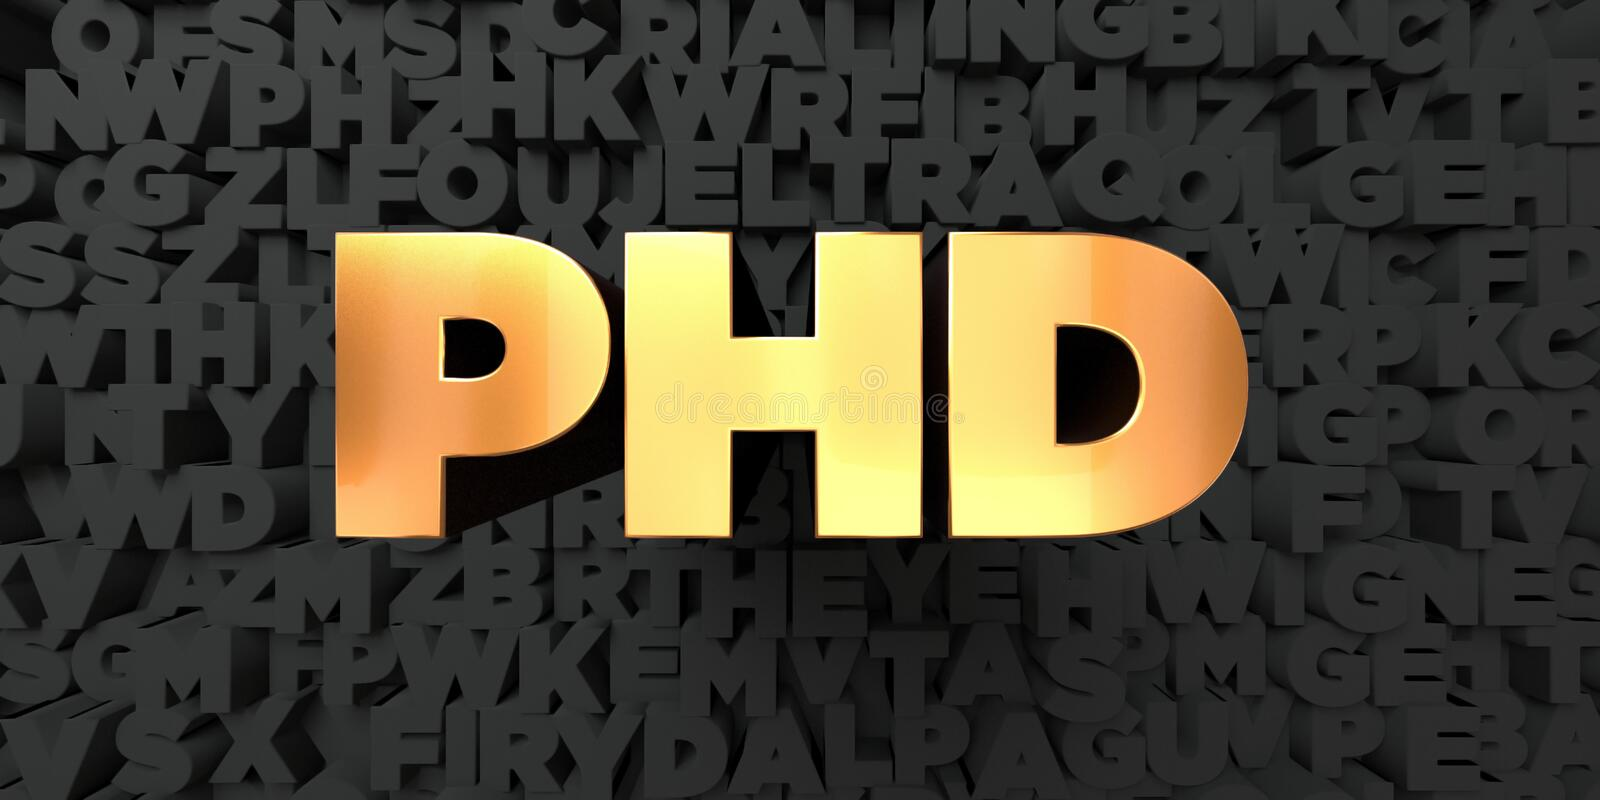 Phd - Gold text on black background - 3D rendered royalty free stock picture. This image can be used for an online website banner ad or a print postcard vector illustration